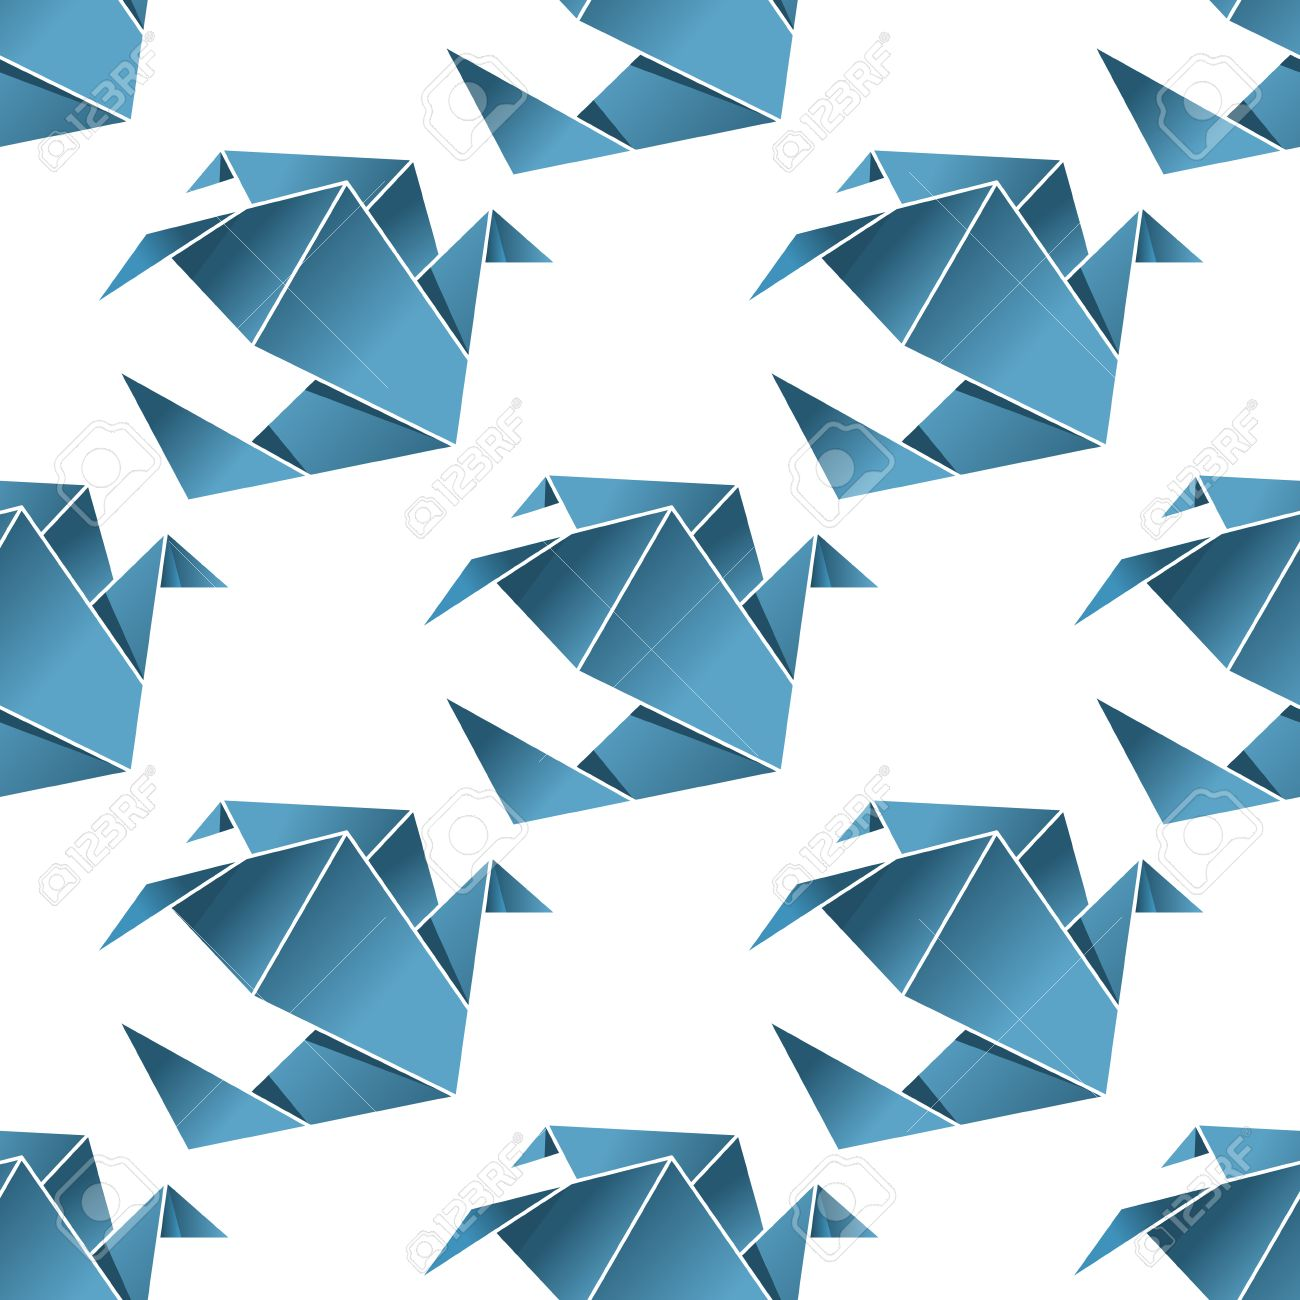 Seamless pattern of origami flying pigeon birds in the tradition seamless pattern of origami flying pigeon birds in the tradition of japanese paper folding in square jeuxipadfo Image collections